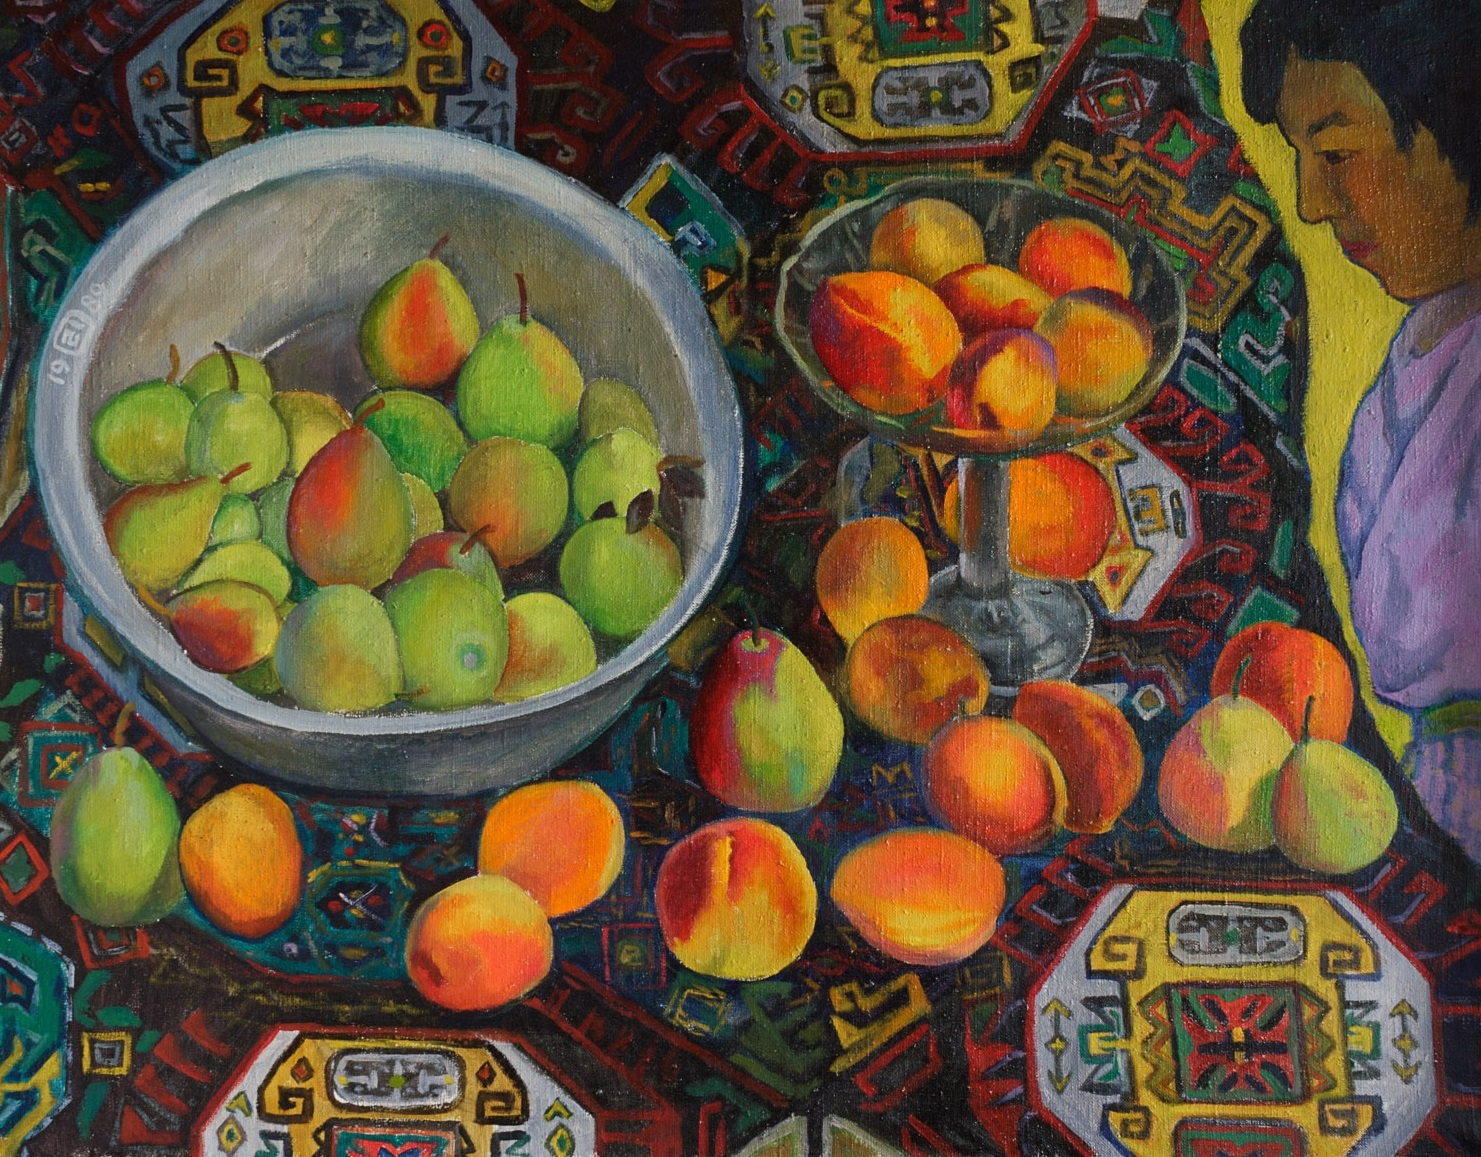 Moesey Li; Oriental Still Life, 1989, Original Painting Oil, 90 x 70 cm. Artwork description: 241 peaches, pears, realism, still life, carpet, woman...